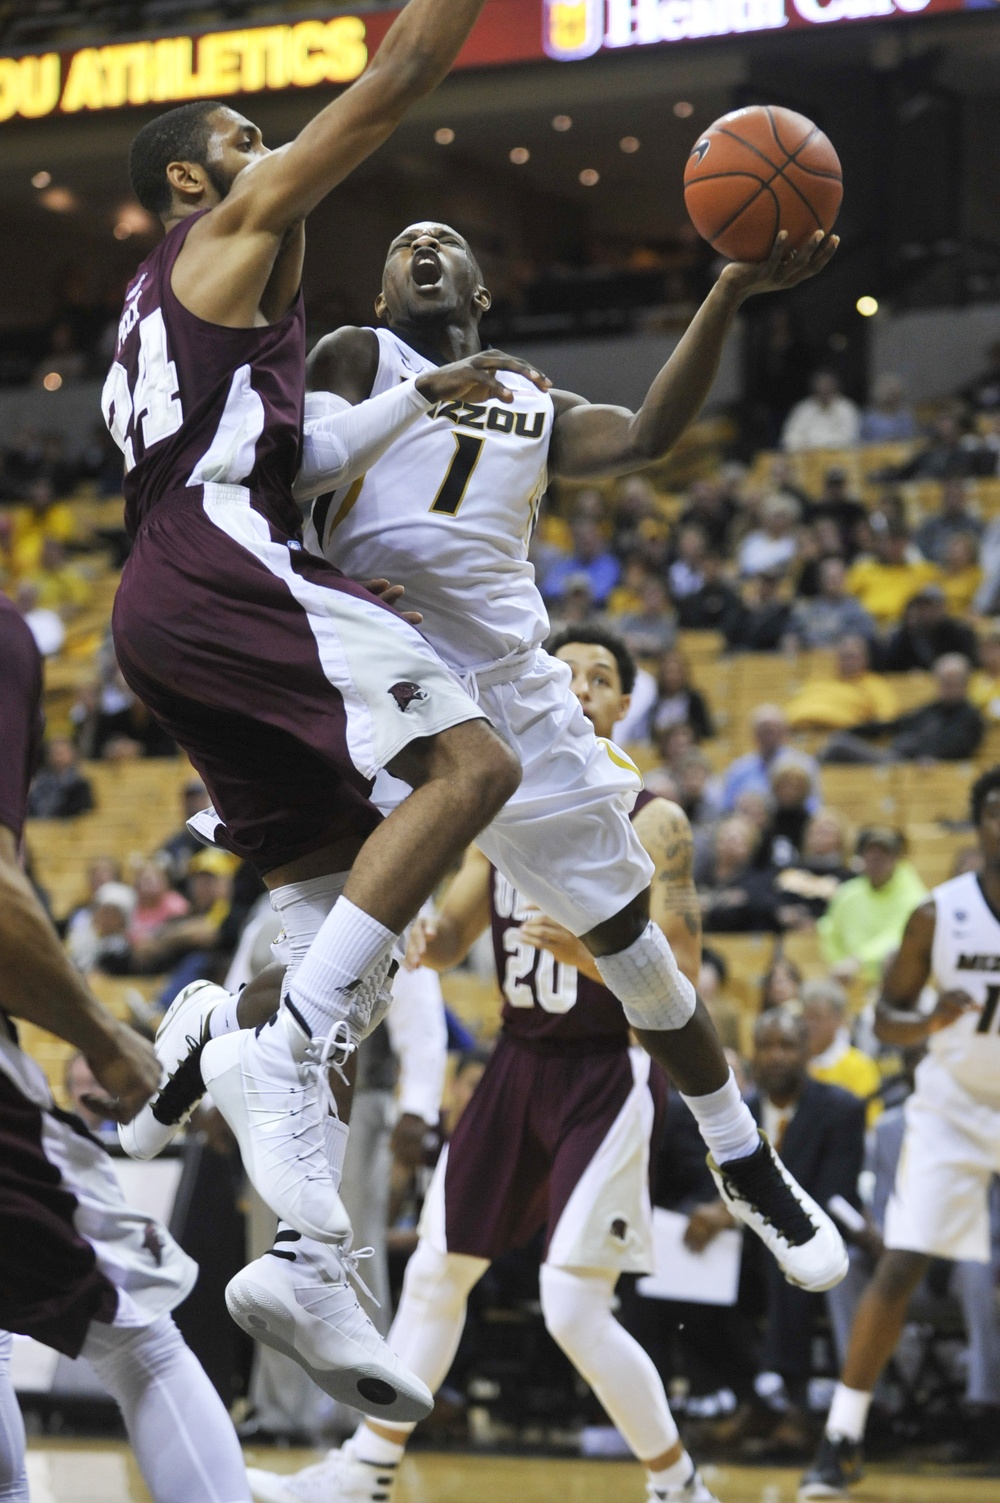 Missouri's Terrence Phillips shoots the ball as Maryland-Eastern Shore's Derrico Peck attempts to guard him on Sunday, November 15, 2015 at Mizzou Arena. Missouri won 73-55.